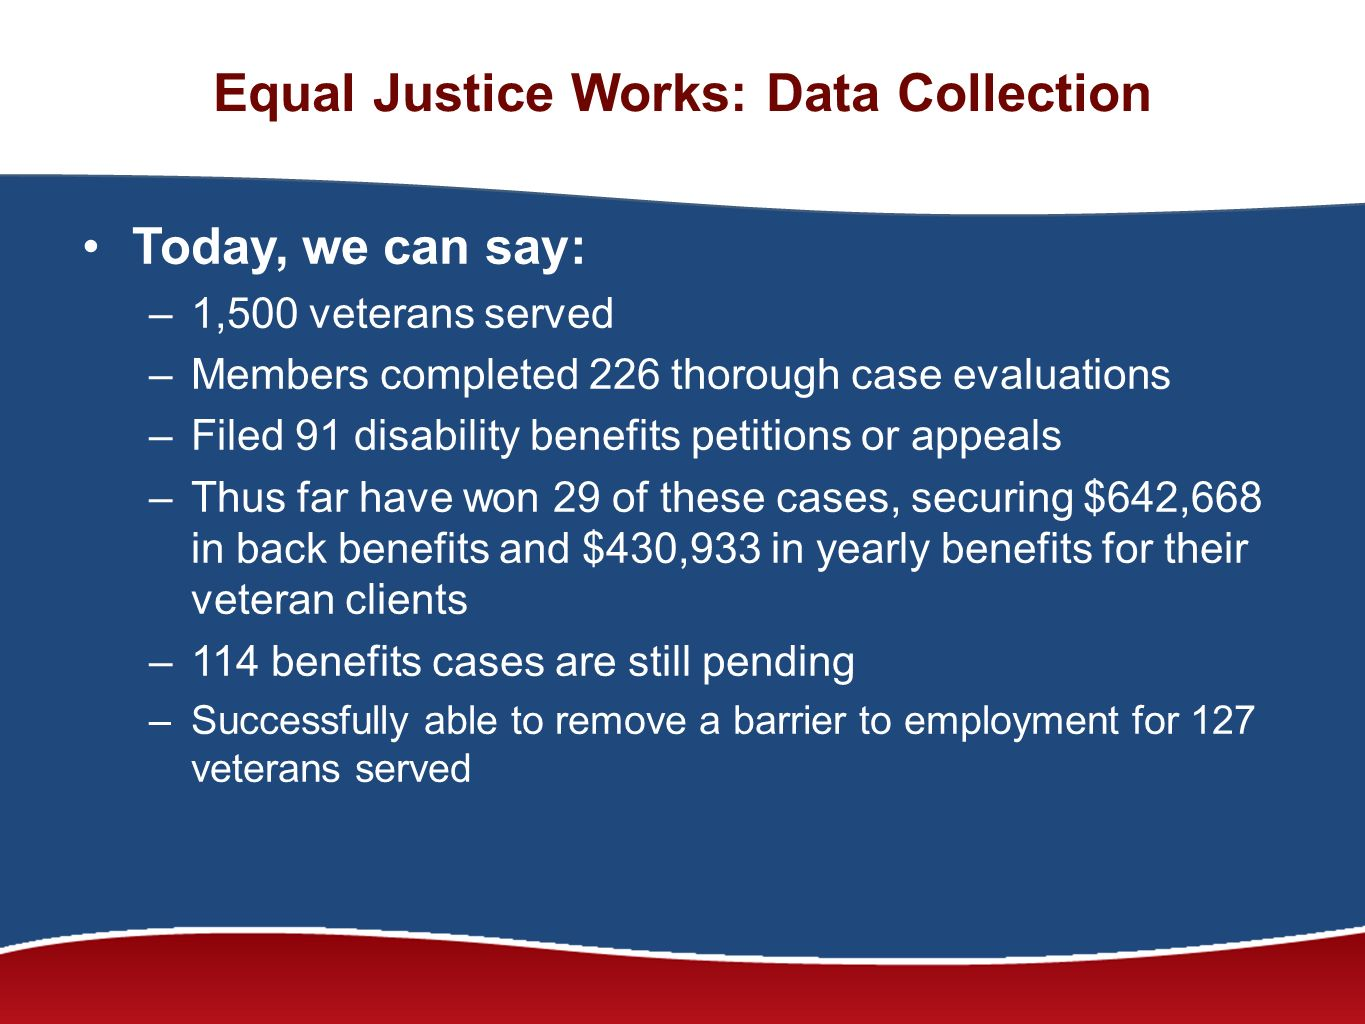 Equal Justice Works: Data Collection Today, we can say: –1,500 veterans served –Members completed 226 thorough case evaluations –Filed 91 disability benefits petitions or appeals –Thus far have won 29 of these cases, securing $642,668 in back benefits and $430,933 in yearly benefits for their veteran clients –114 benefits cases are still pending –Successfully able to remove a barrier to employment for 127 veterans served –Demographic information specific to veterans served (e.g., era of service, age, gender) –Number of veterans served for each particular legal issues, both on macro and micro levels